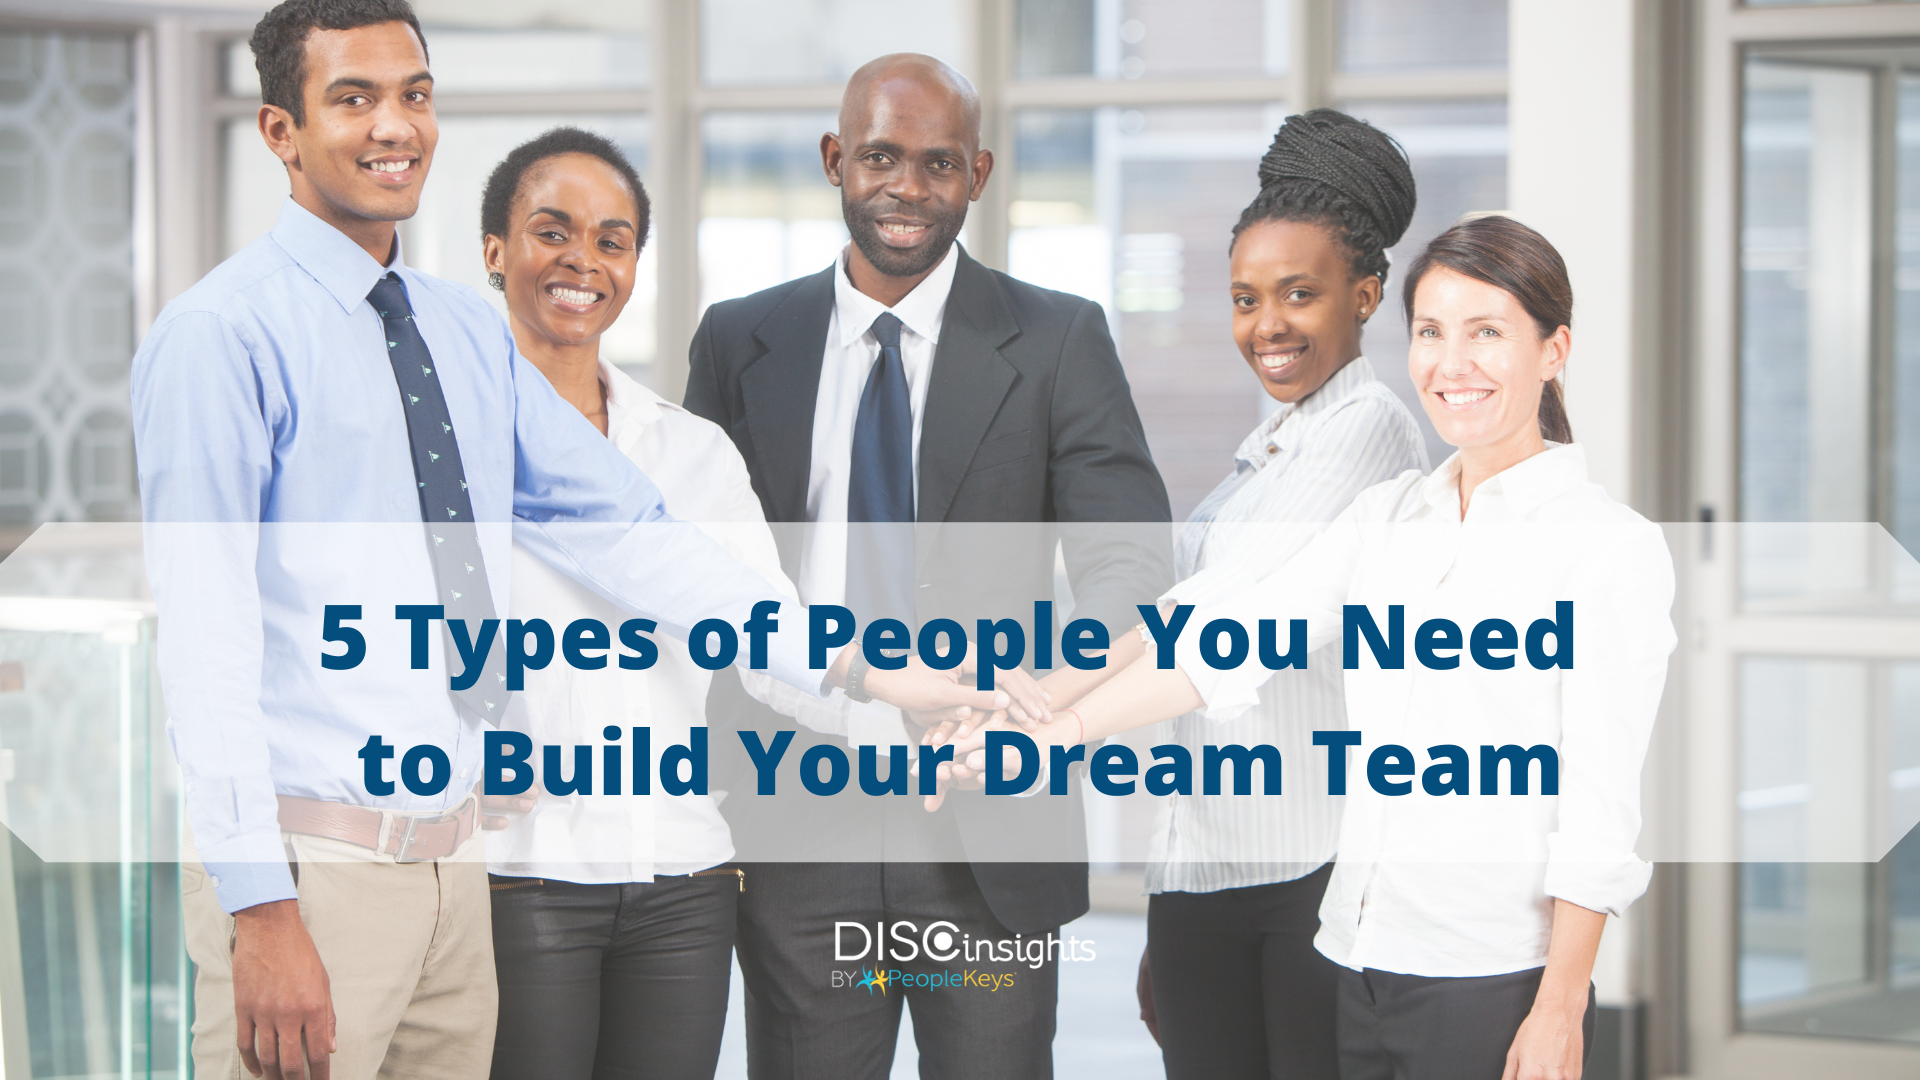 Five Types of People You Need to Build Your Dream Team